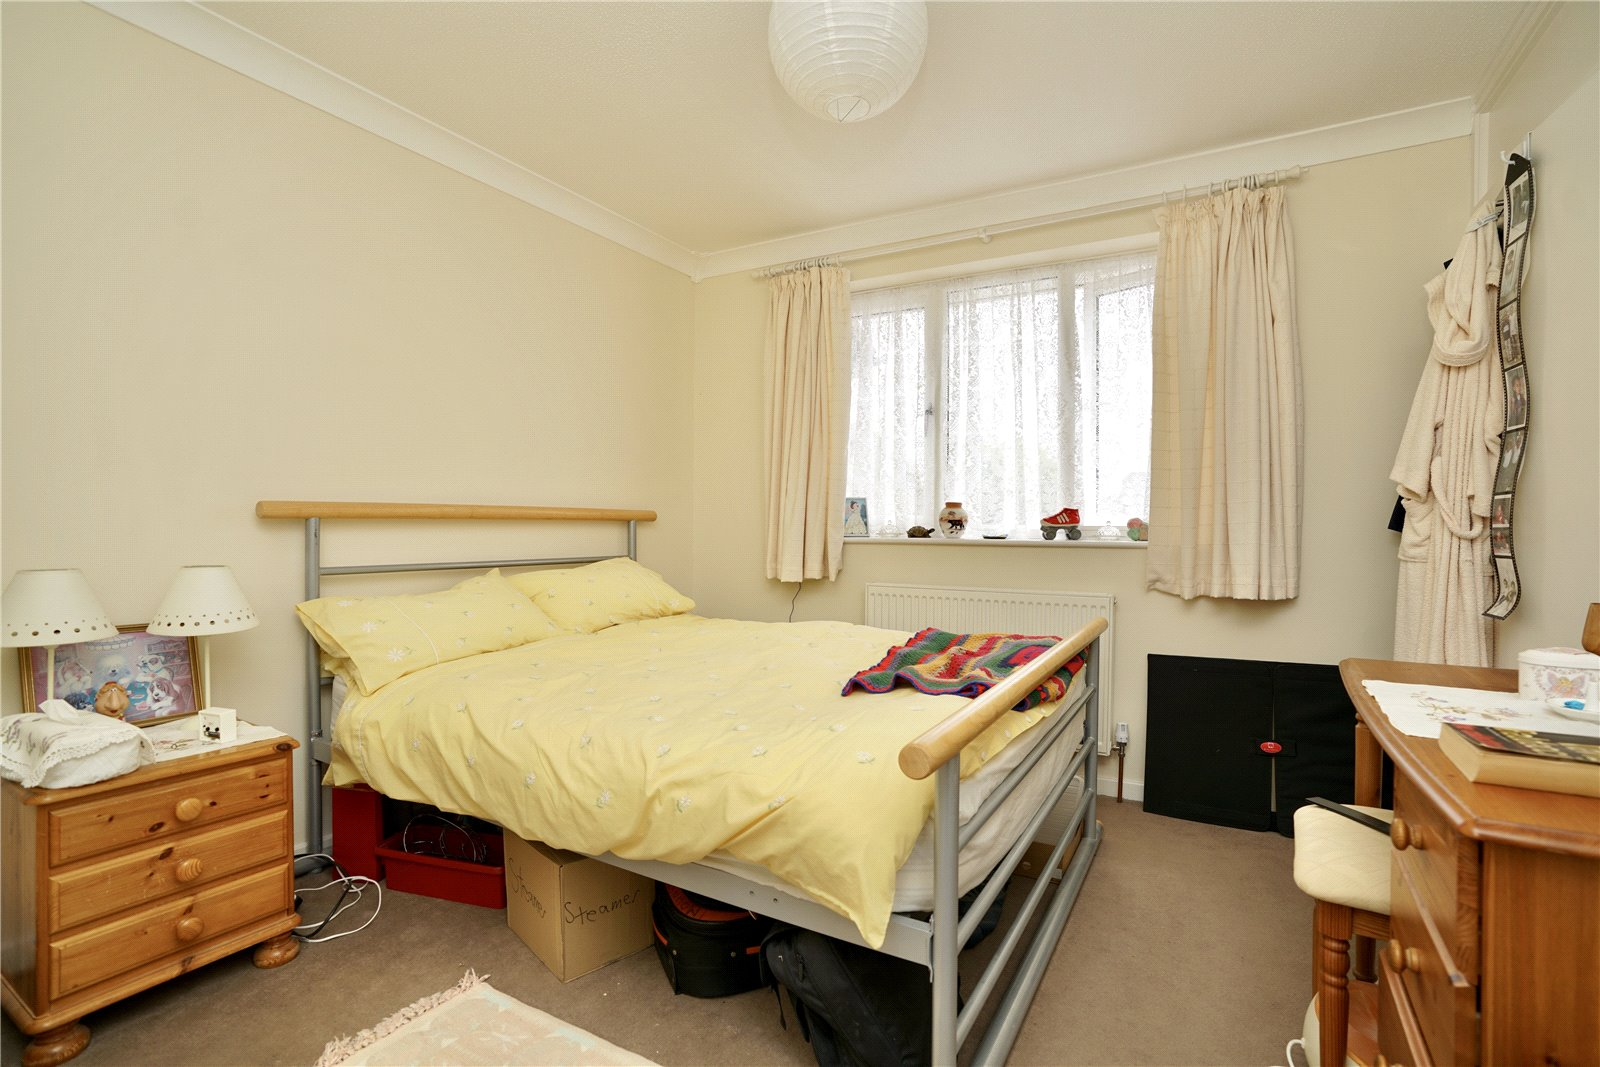 3 bed house for sale in Cunningham Way, Eaton Socon  - Property Image 3